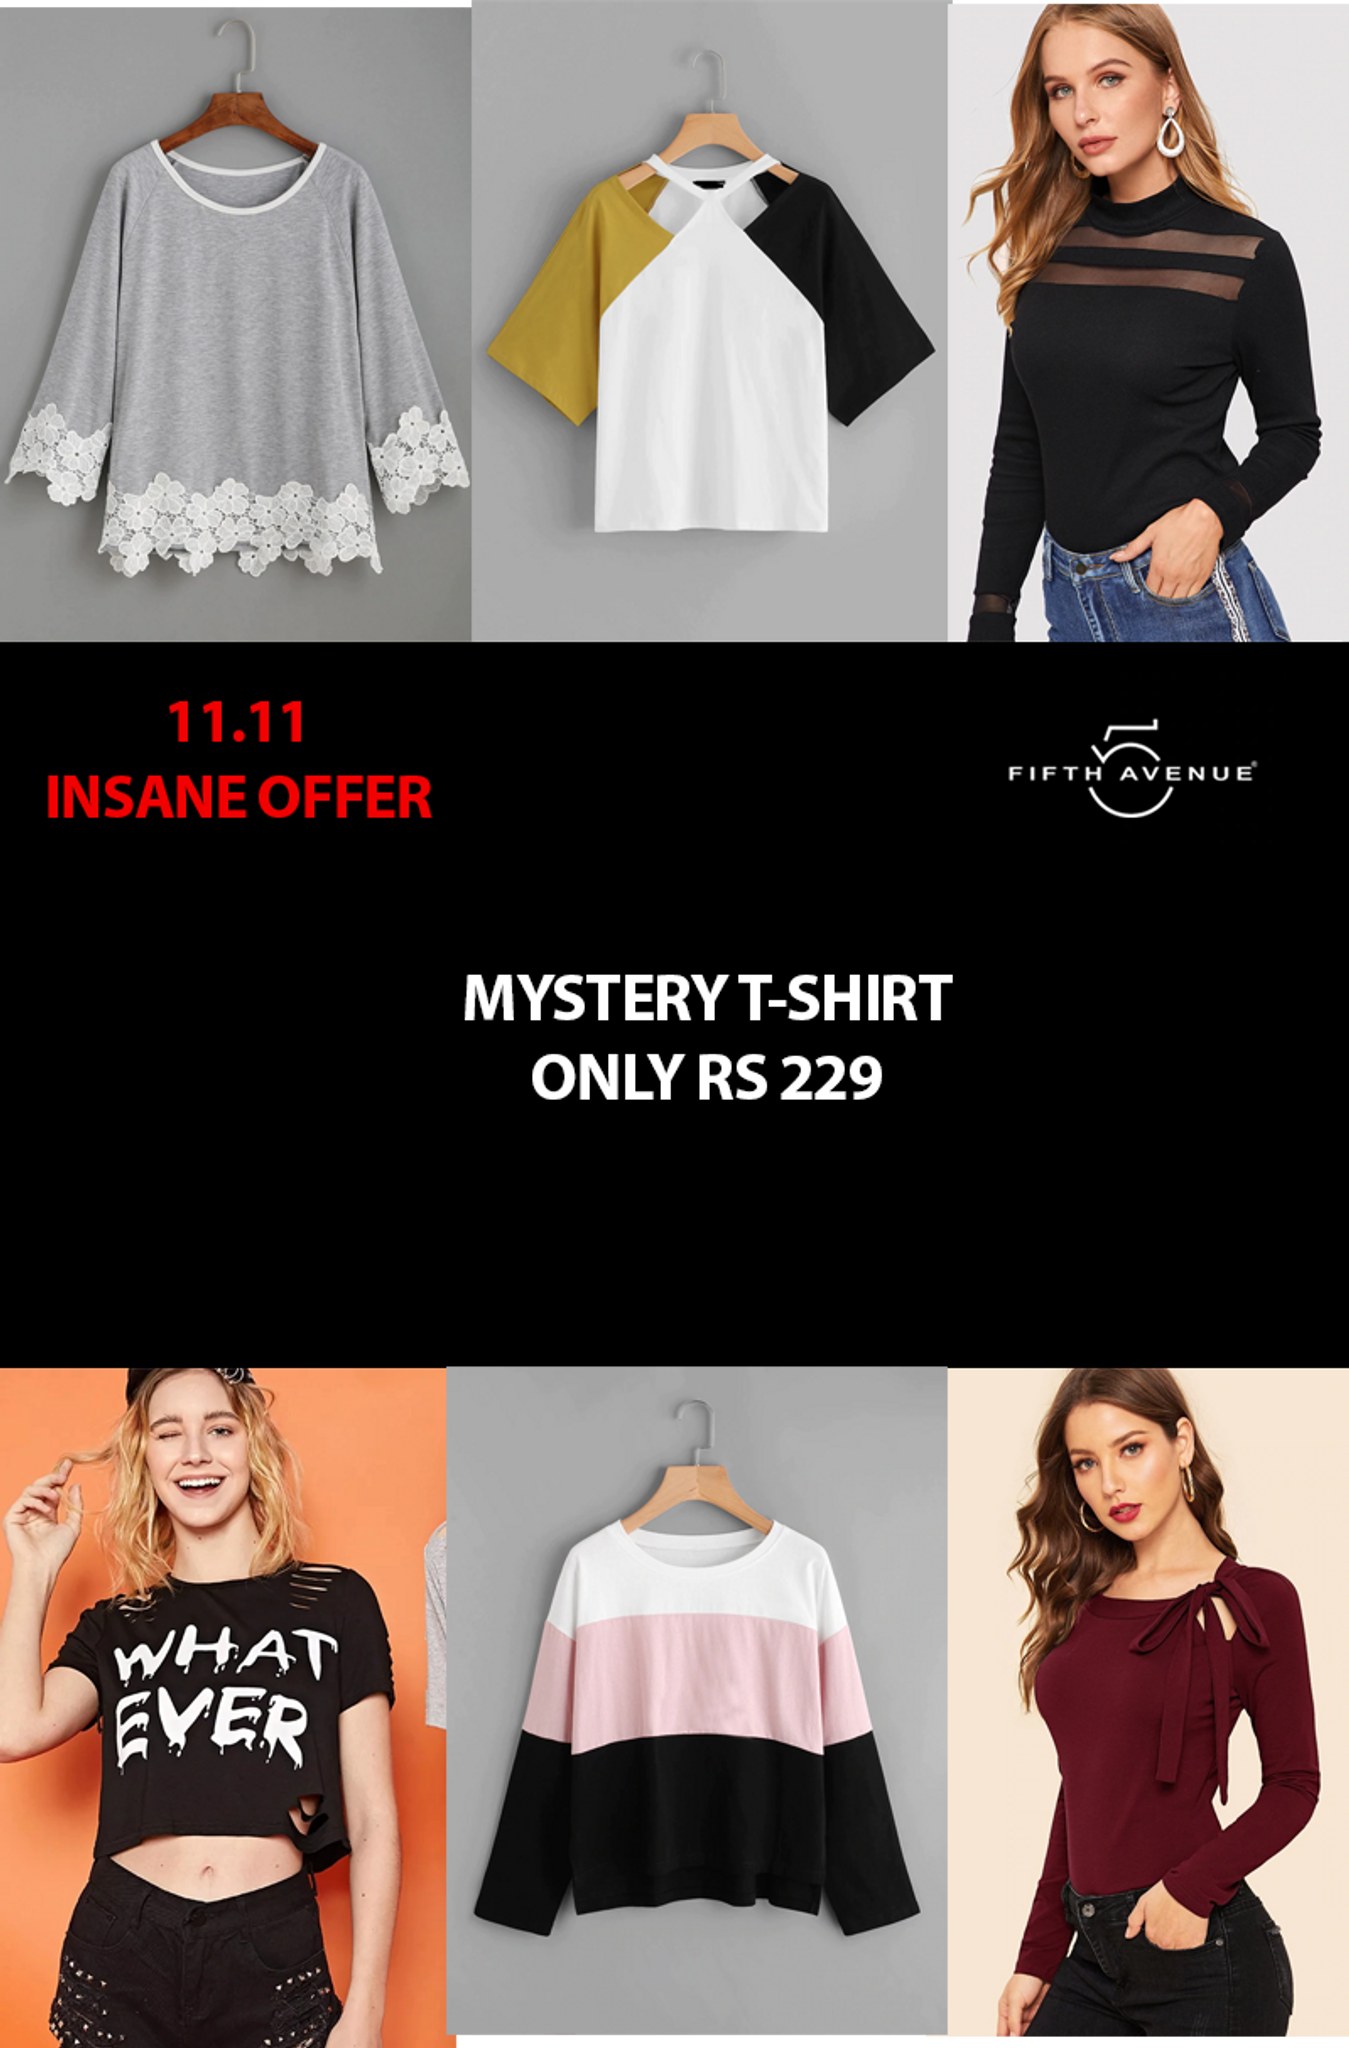 Fifth Avenue Women's Mystery Mania 11 11 Offer - Mystery T-Shirt